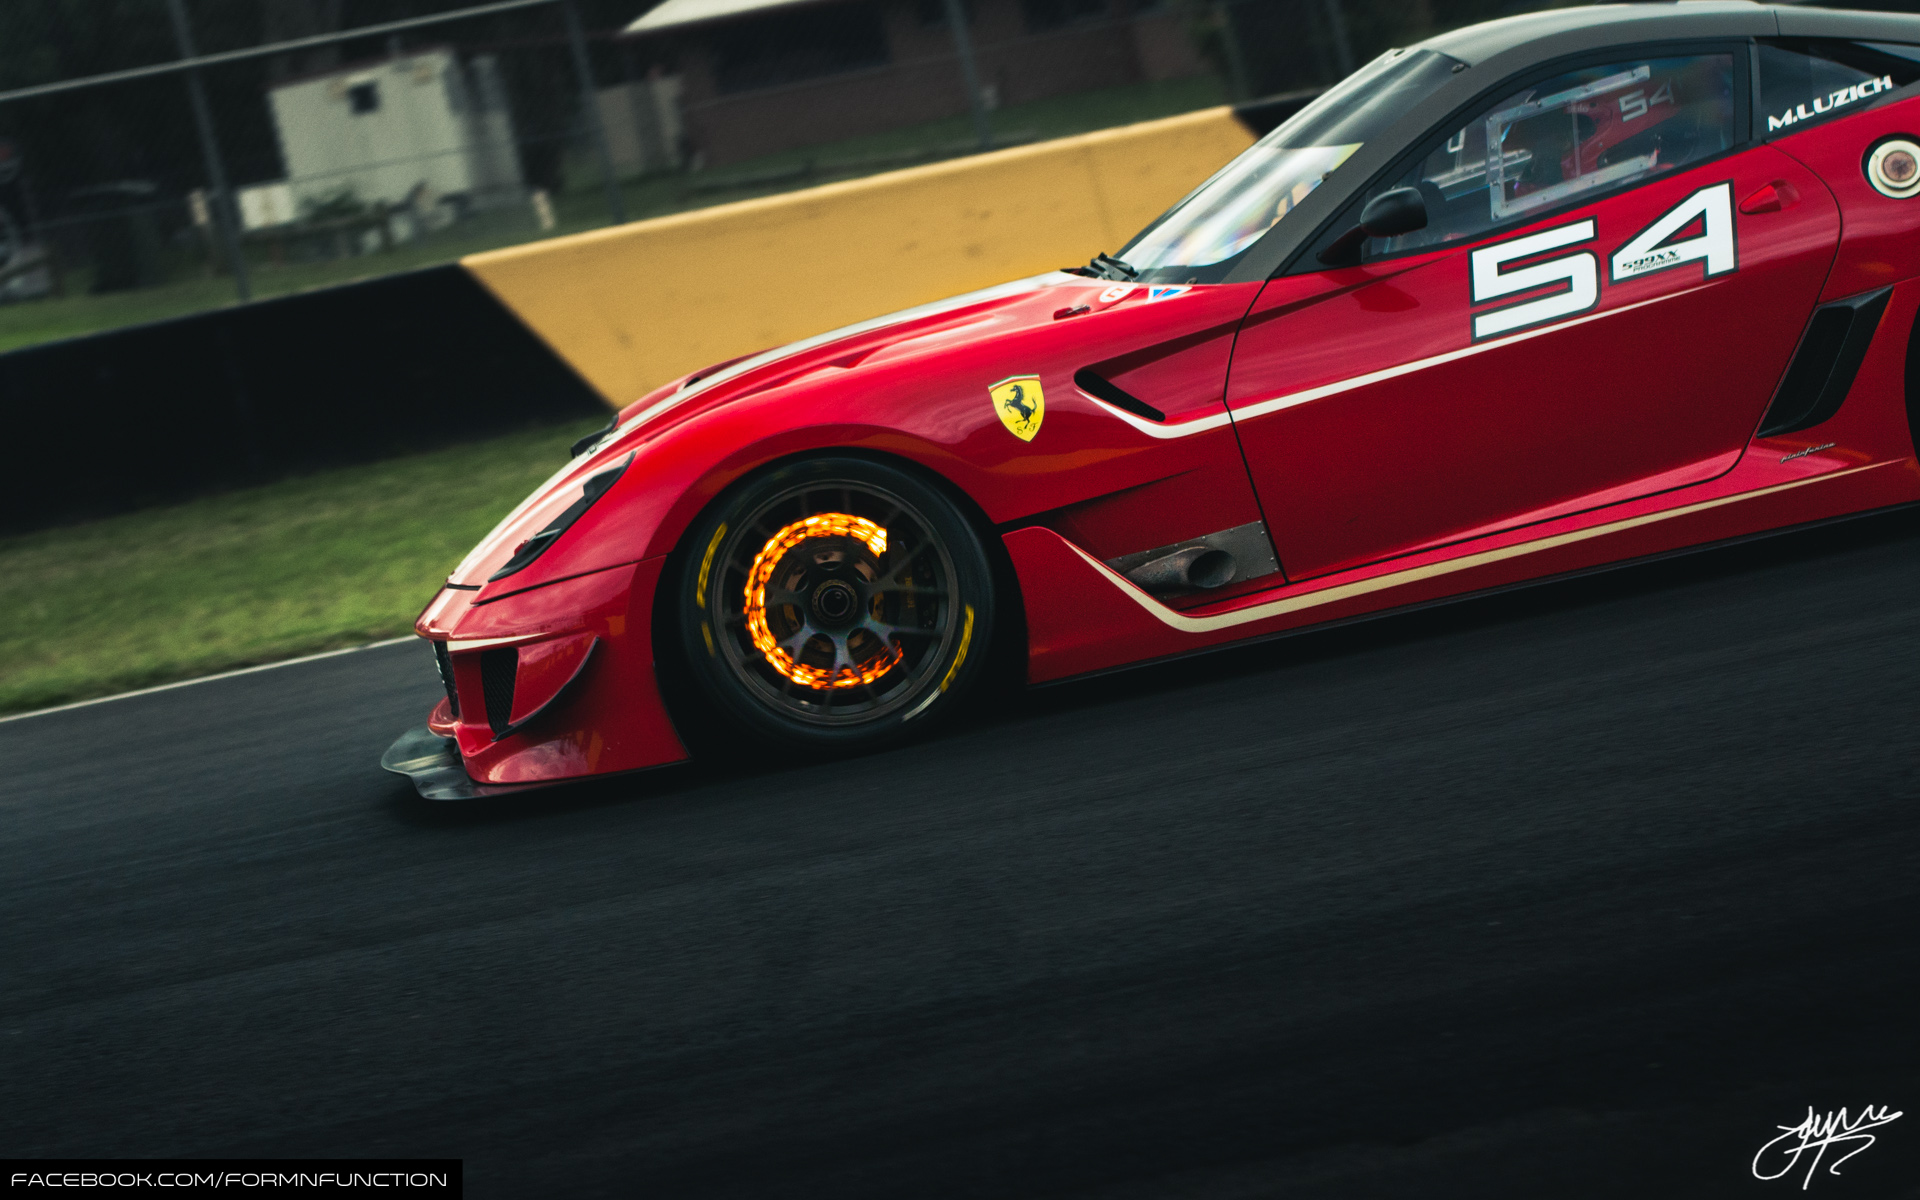 This Red Hot Ferrari 599xx Evo Is Your New Desktop Wallpaper